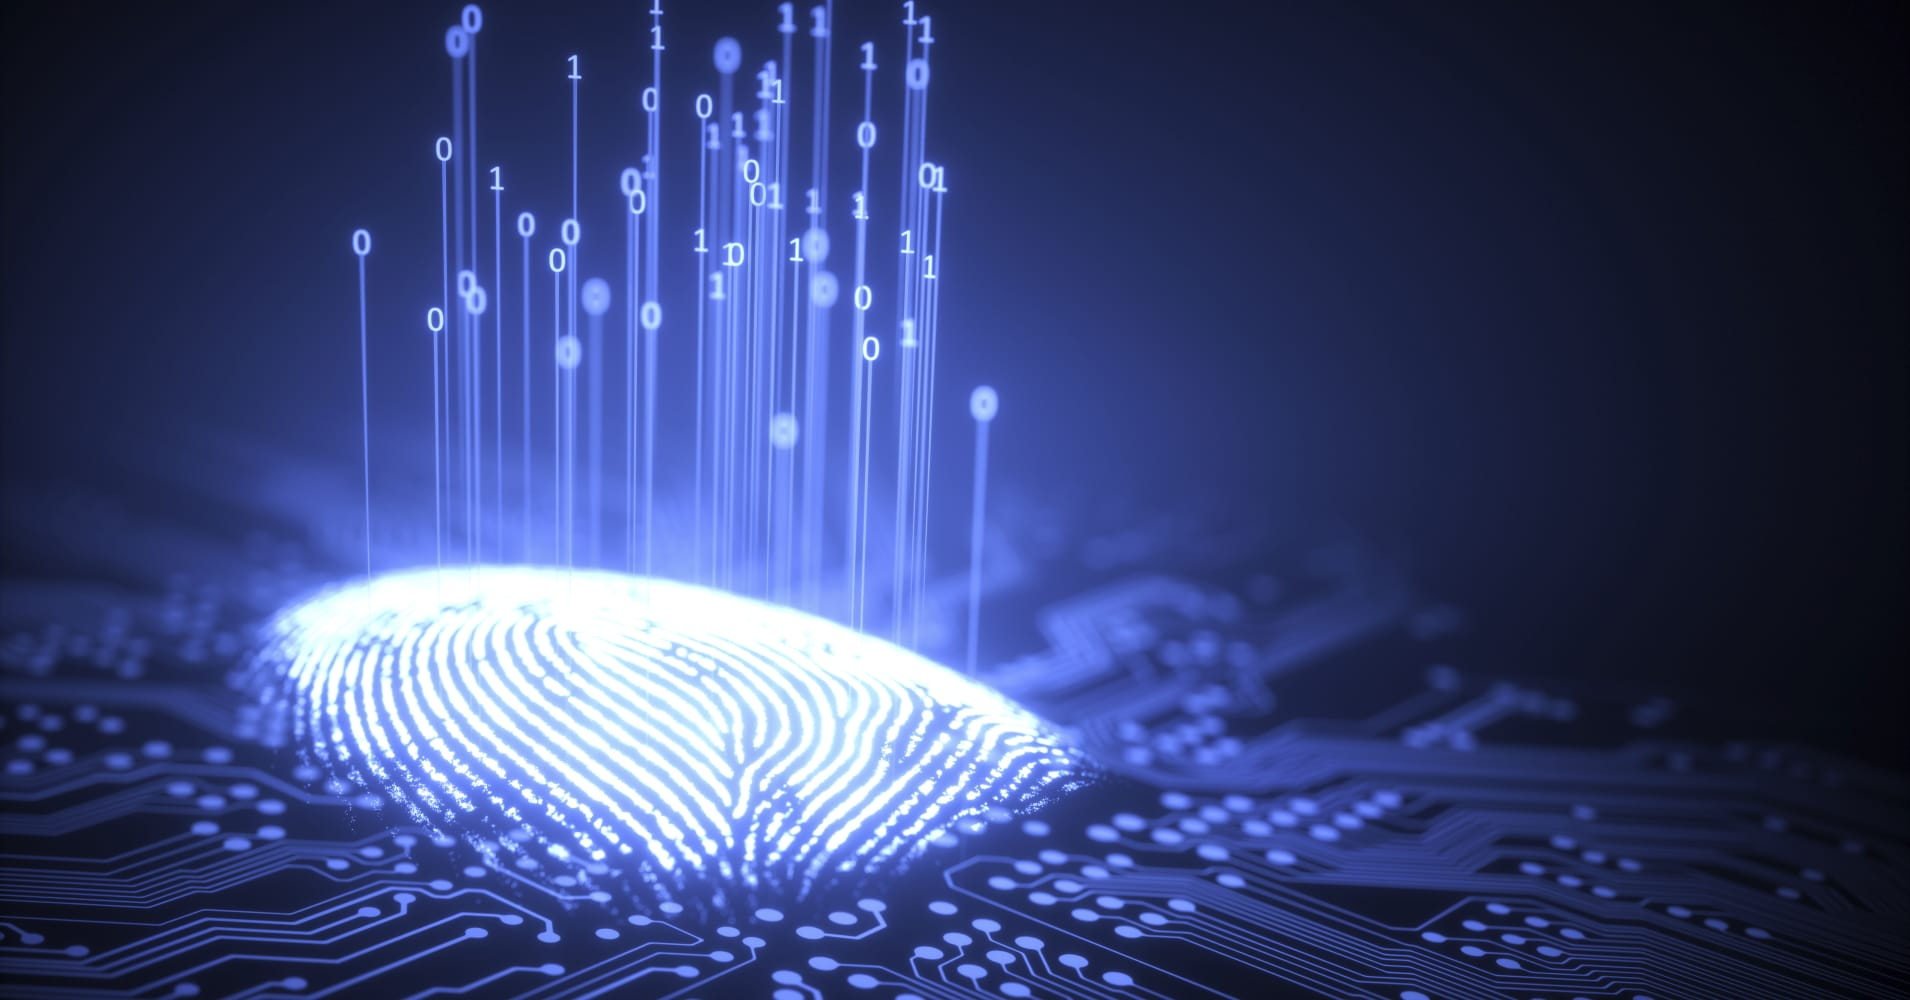 London police develop biometrics device to confirm a suspect's identity in 60 seconds